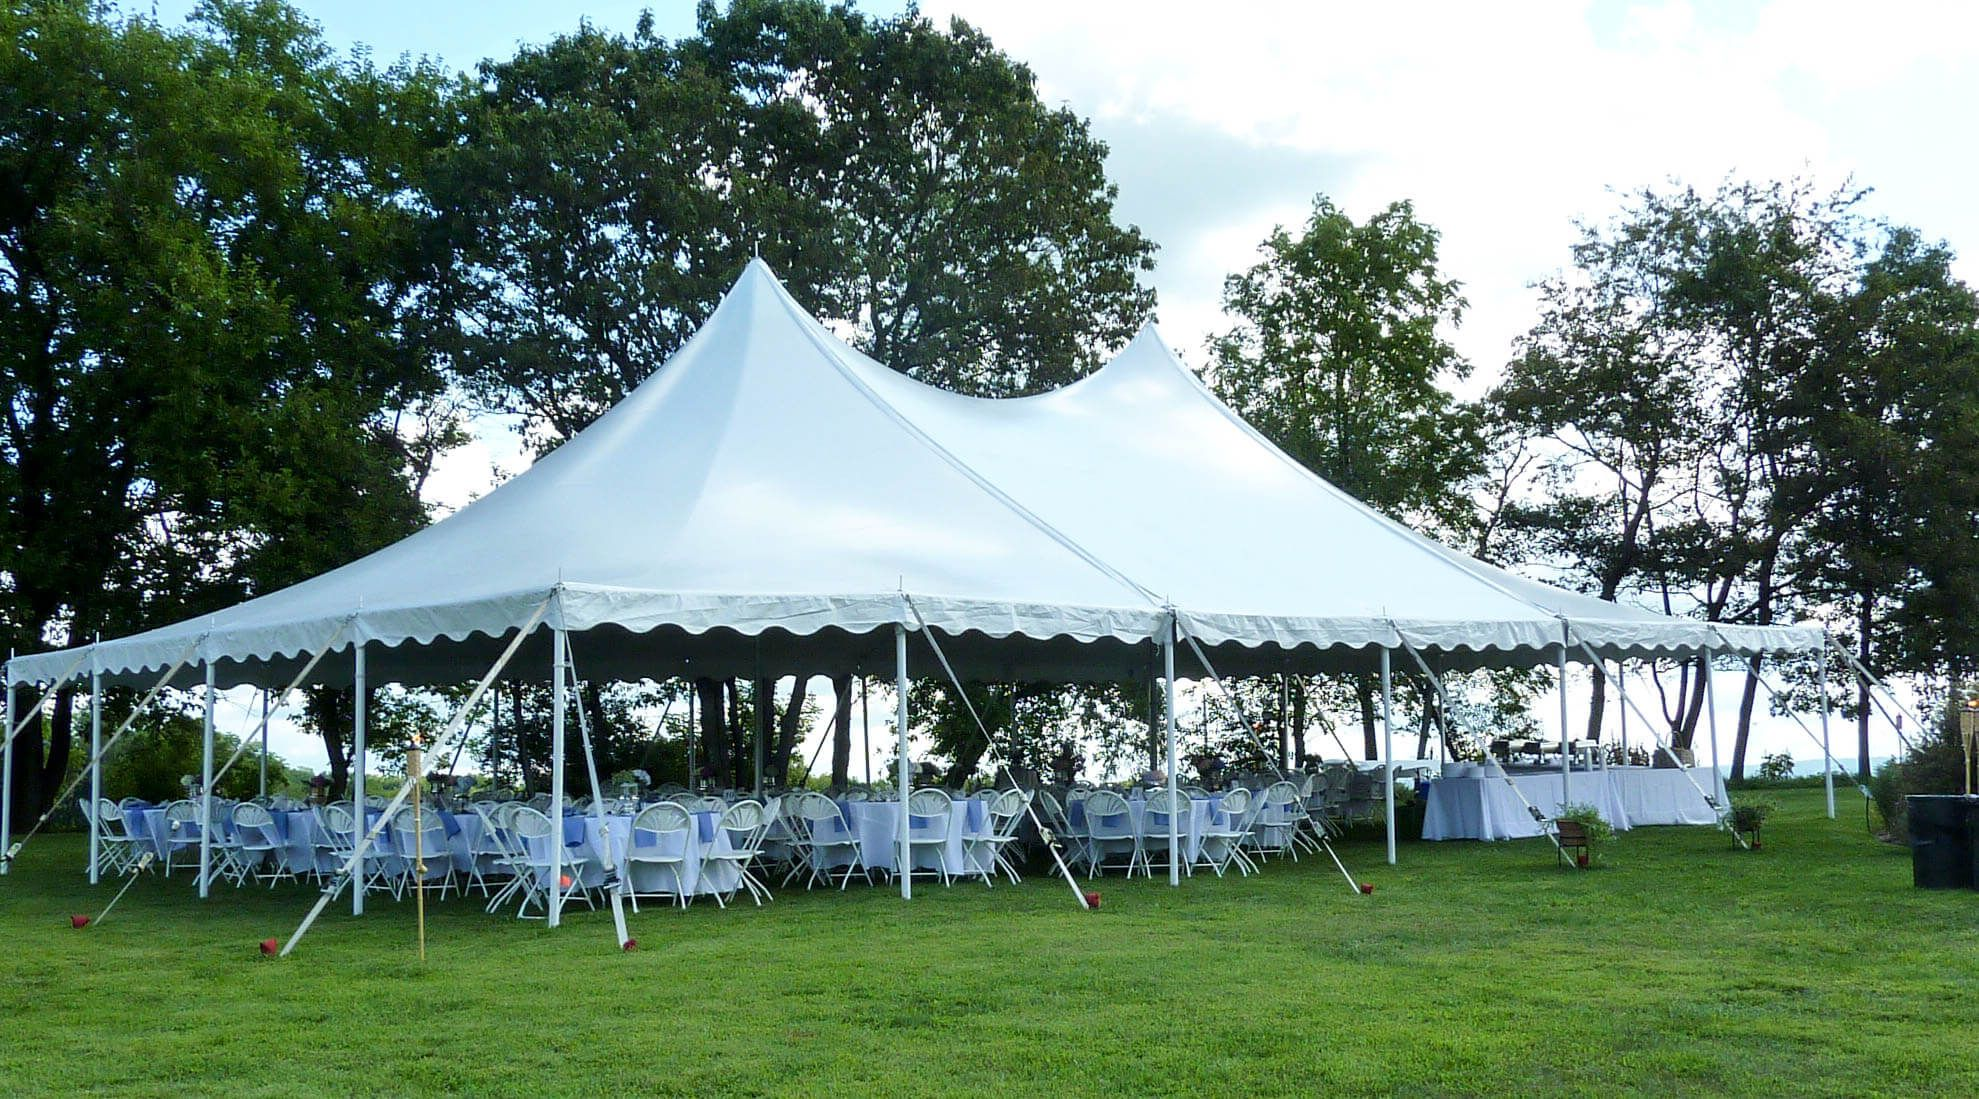 Rent Quality Tents At Most Affordable Prices For Your Next Outdoor